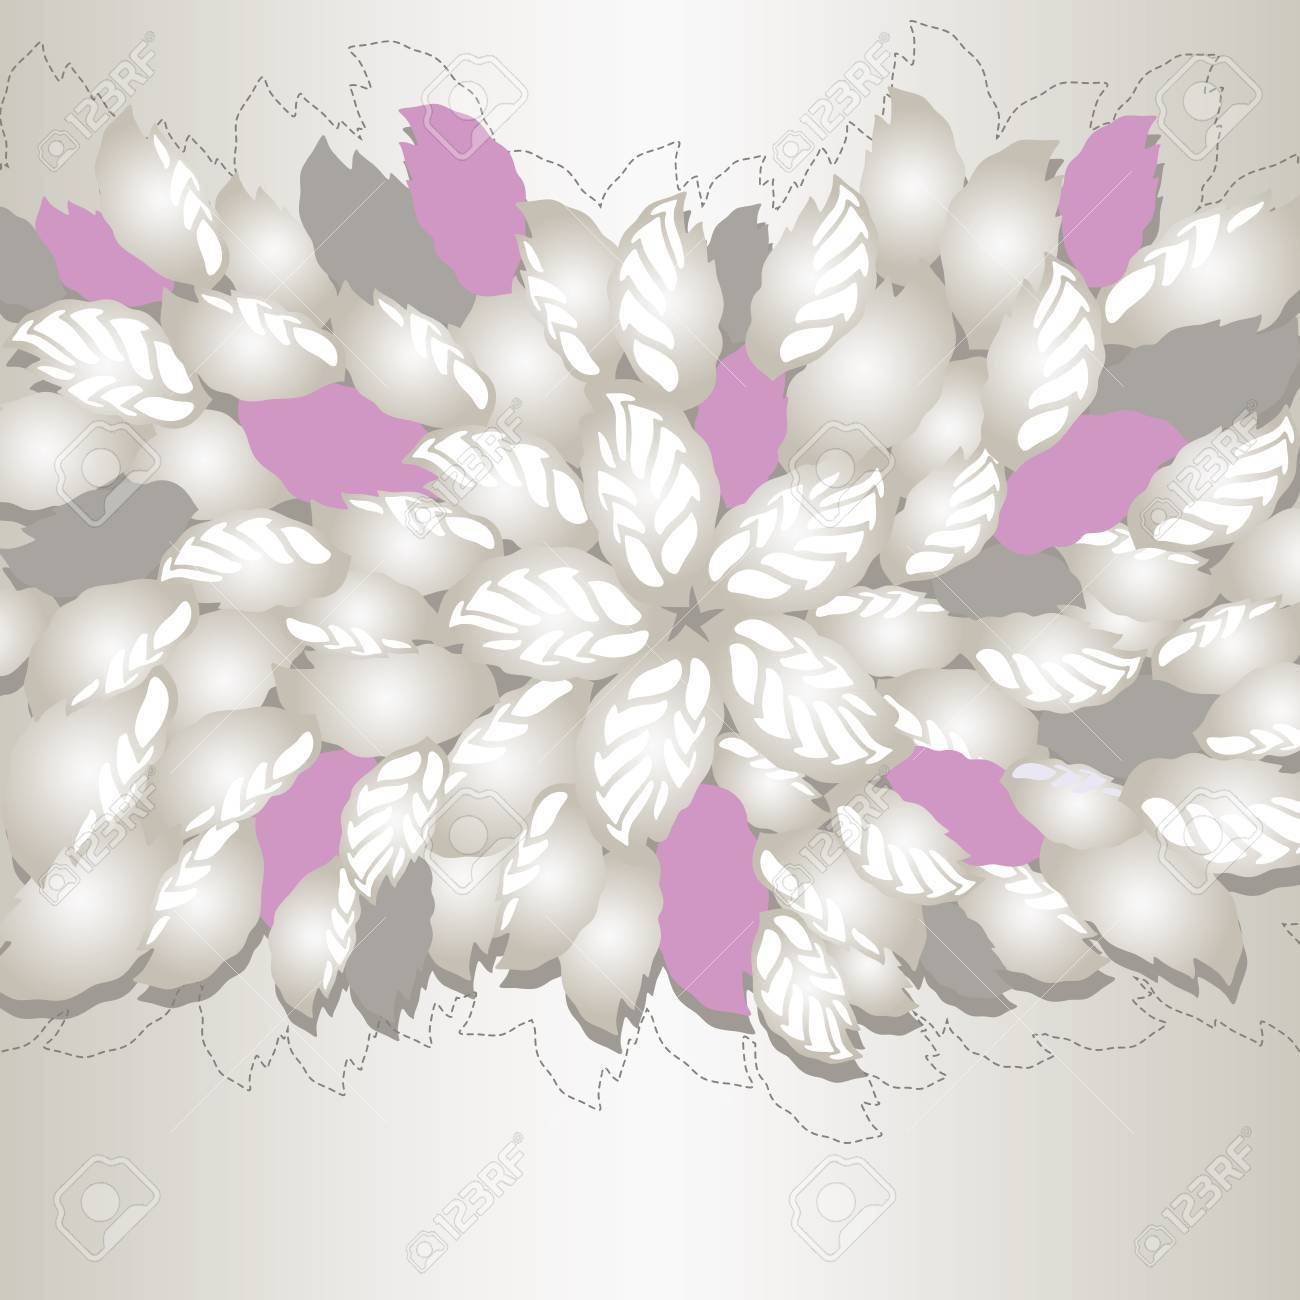 Silver and pink flowers and leaves book cover or greeting card  This image is a vector illustration Stock Vector - 19430709